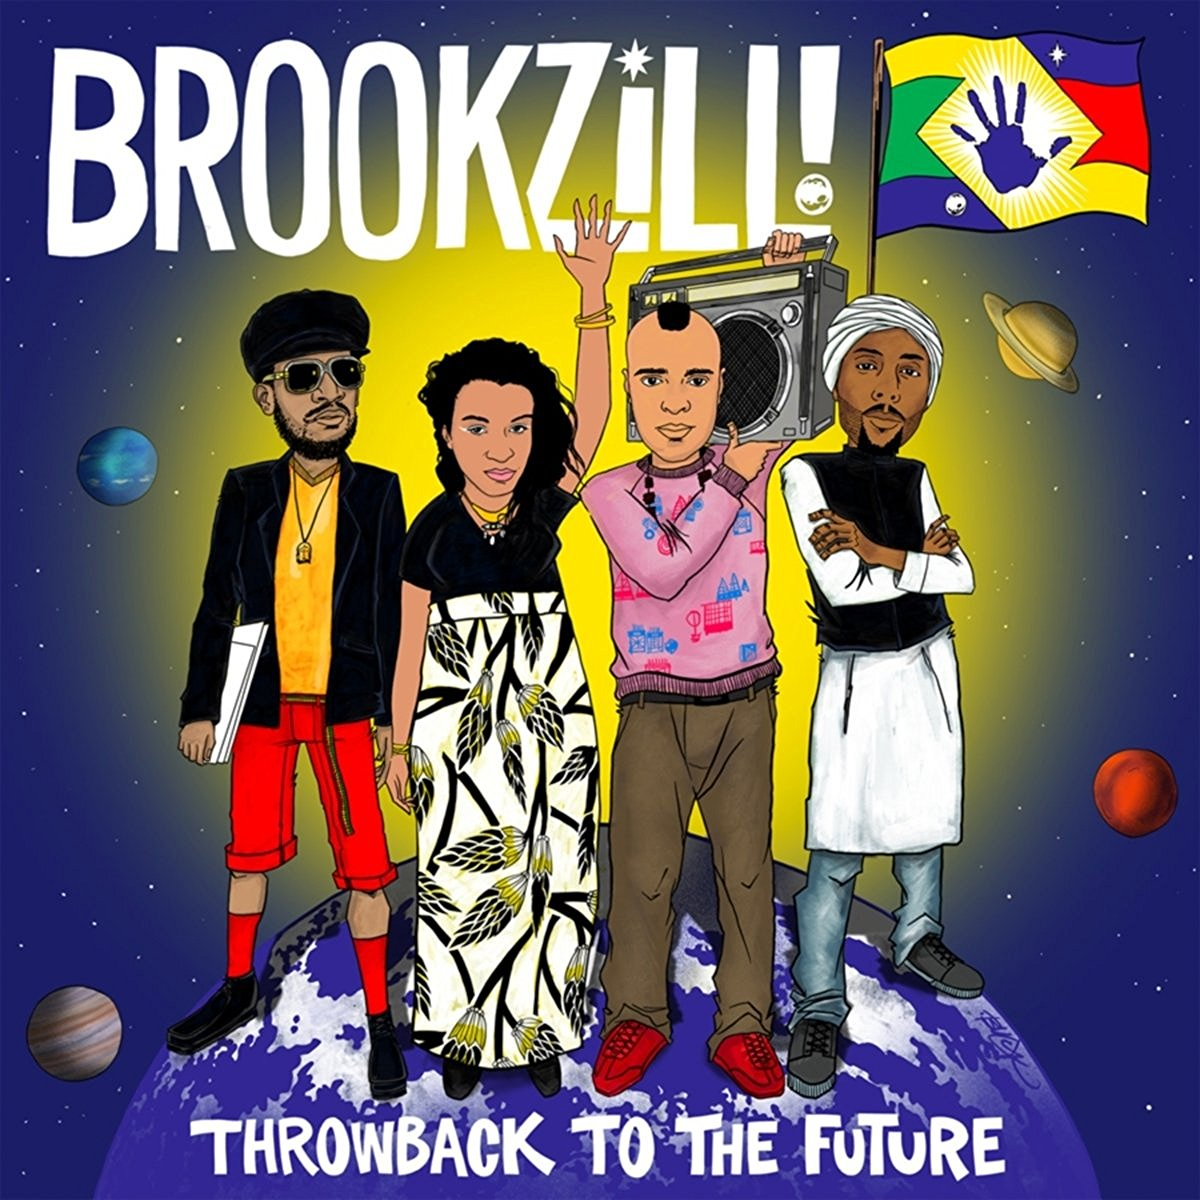 BROOKZILL!, Throwback to the Future